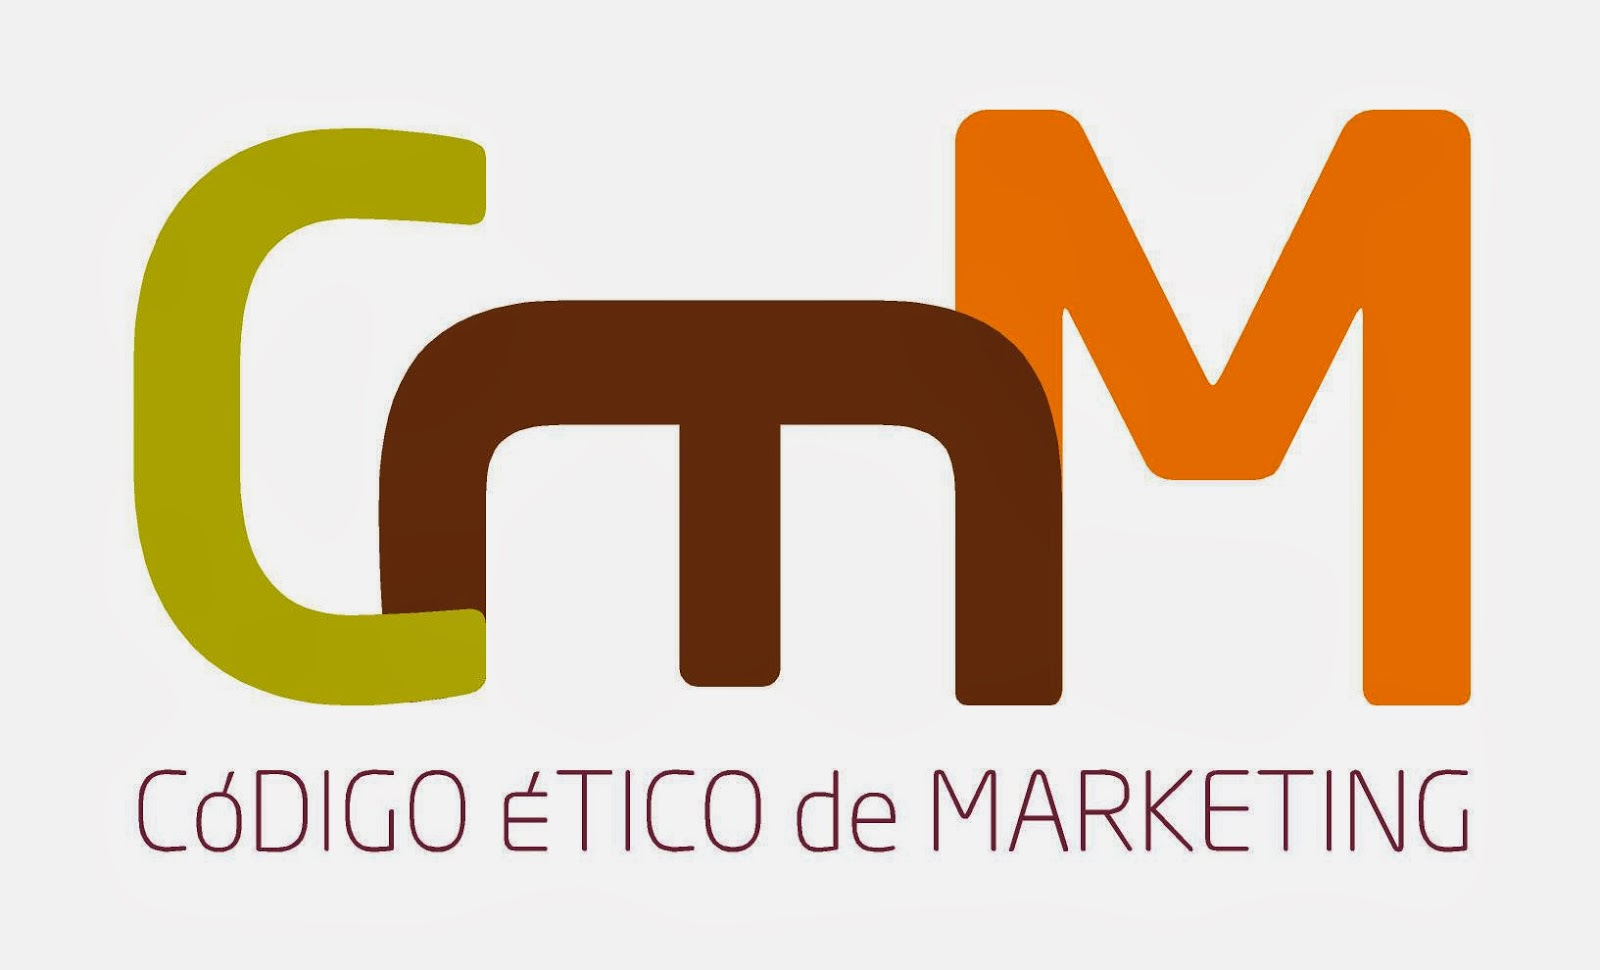 Código Ético de Marketing